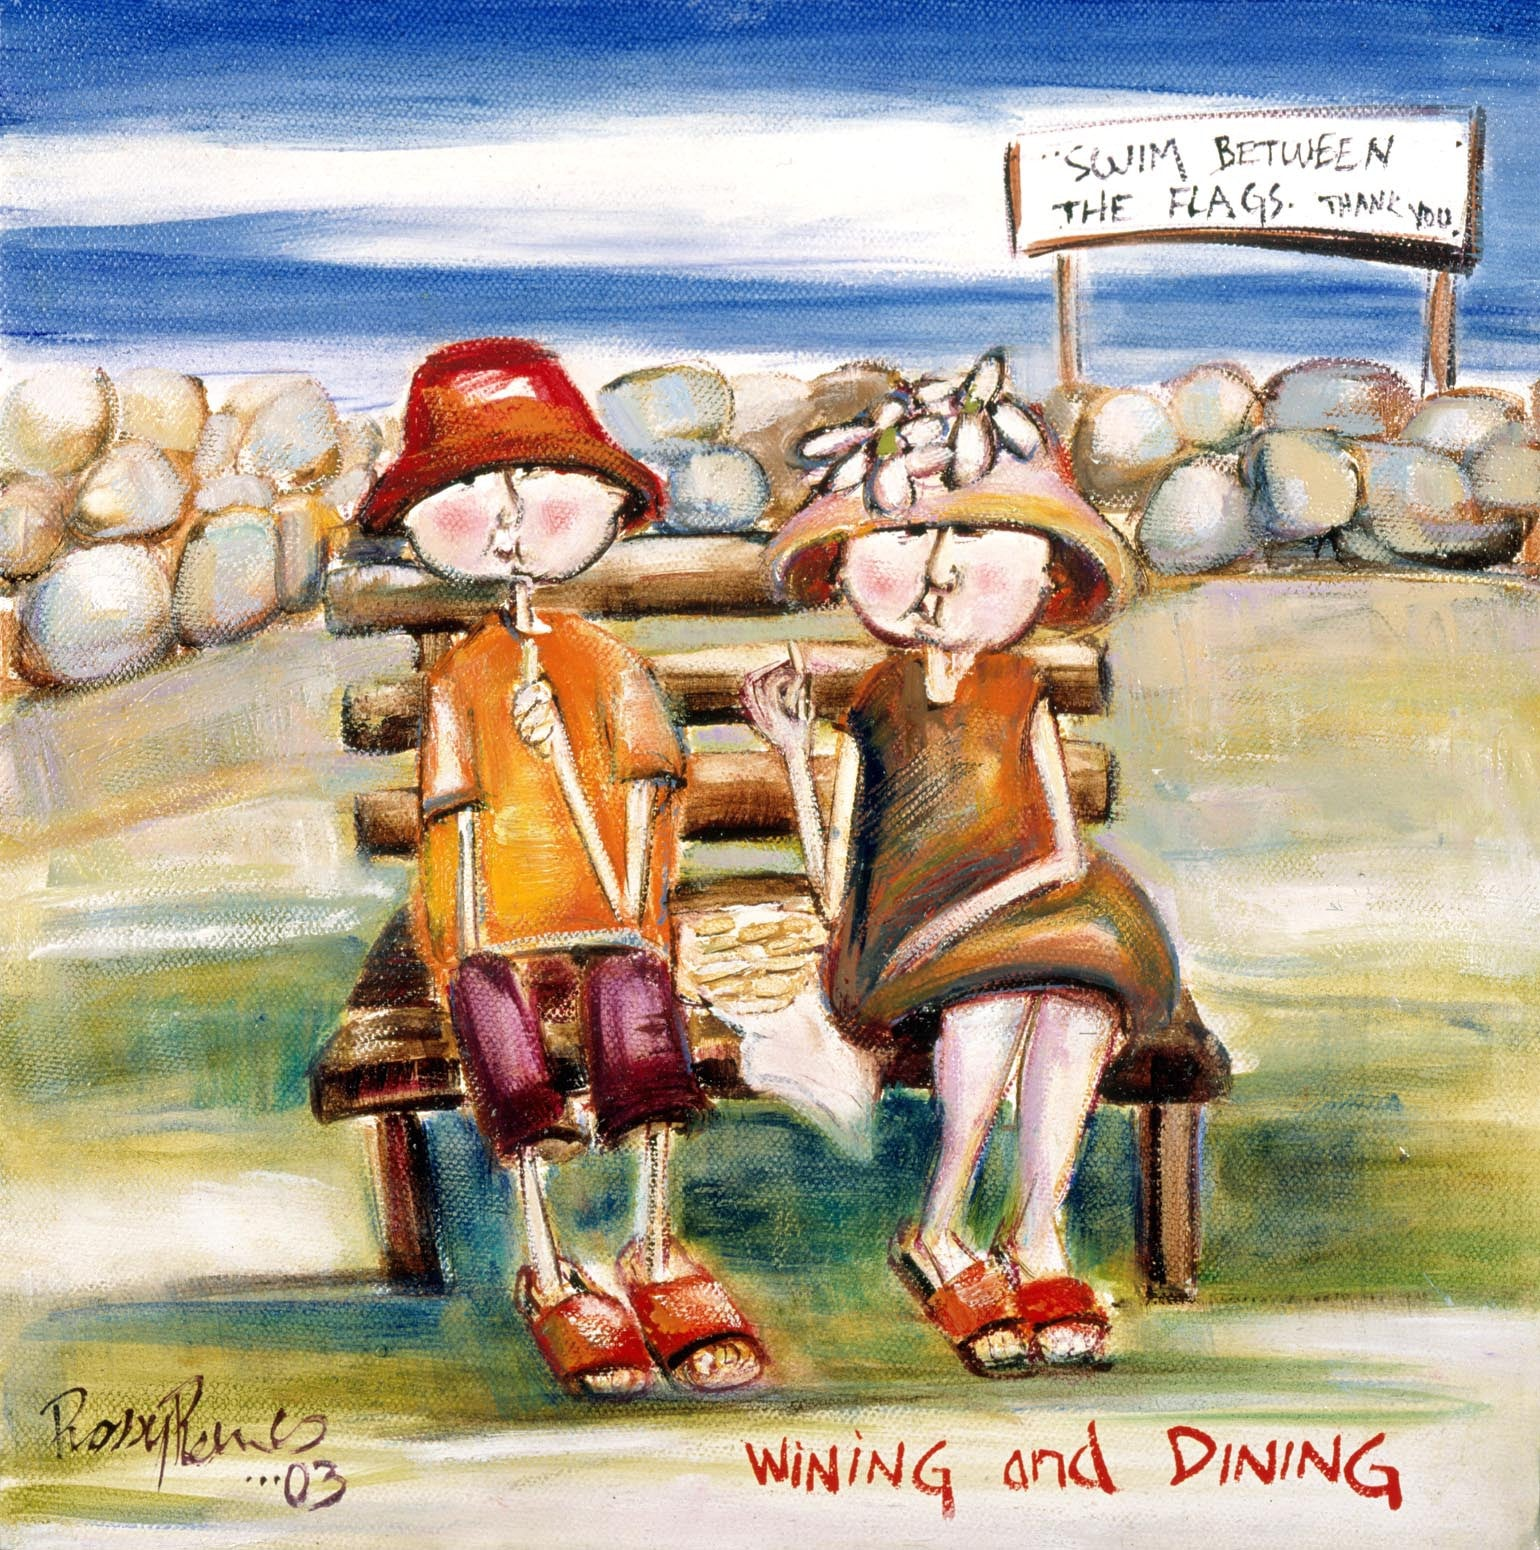 WINING AND DINING - YEAR 2003